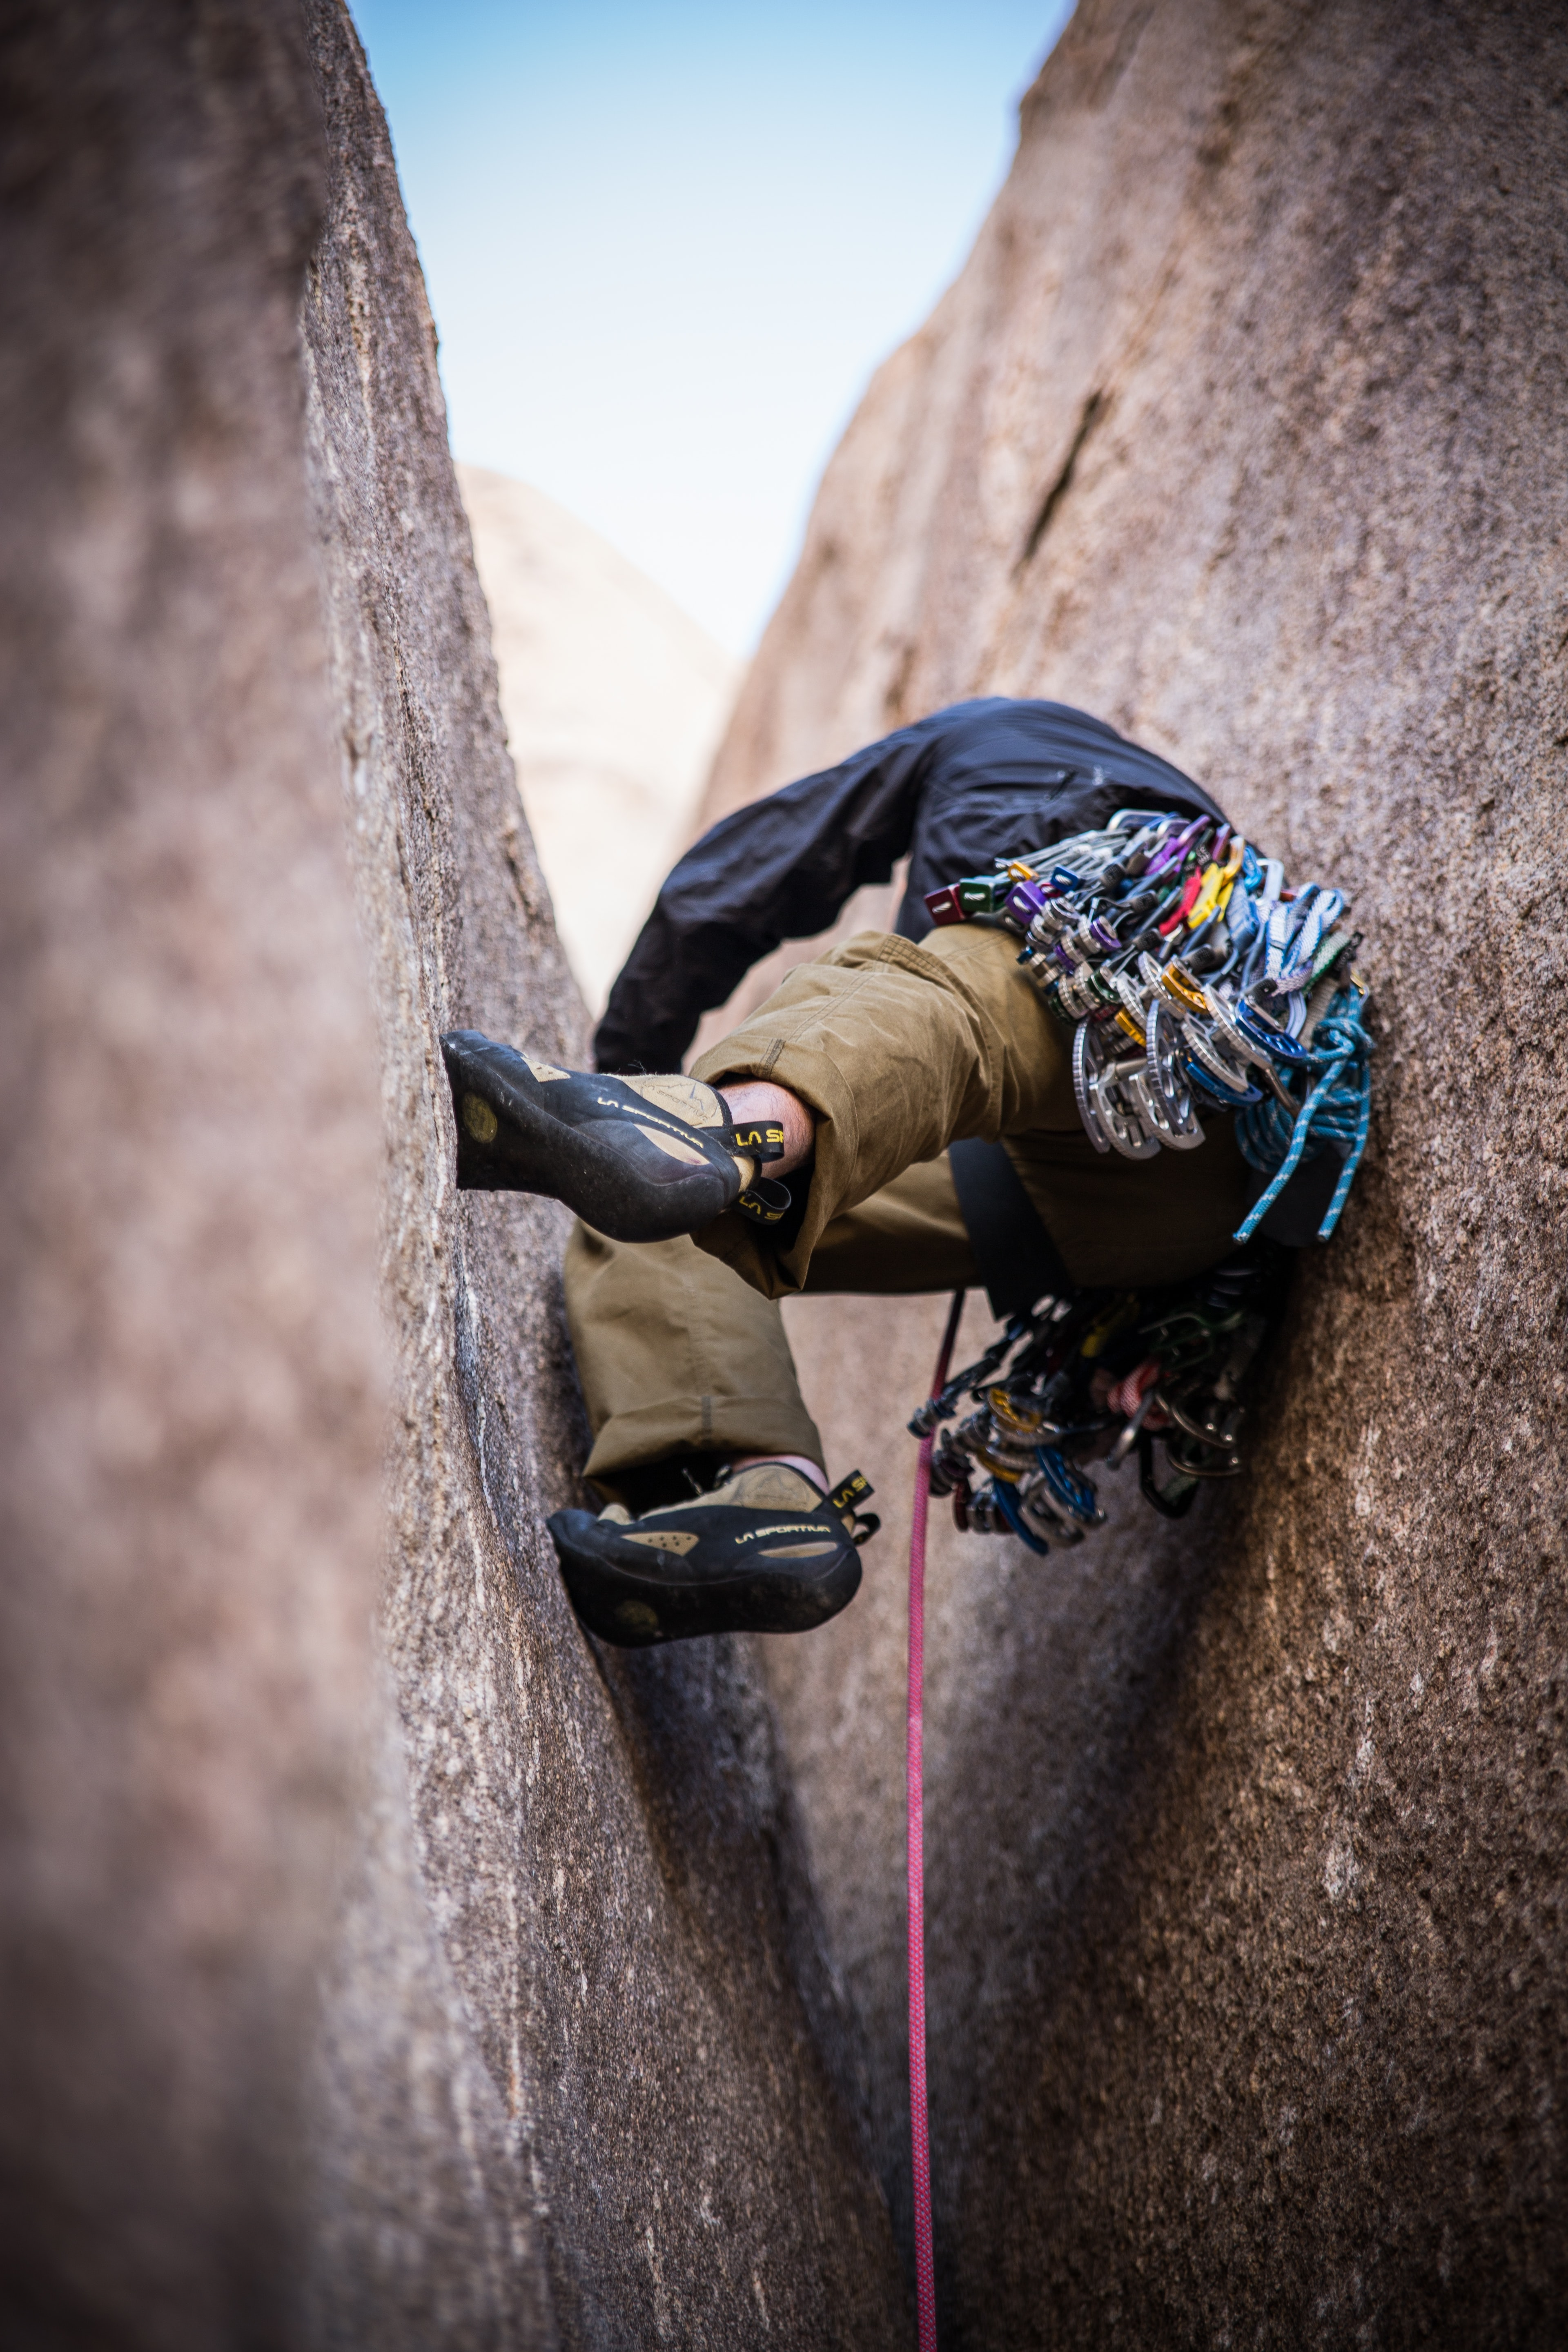 A rock climber scaling between two massive rocks and attached to a harness